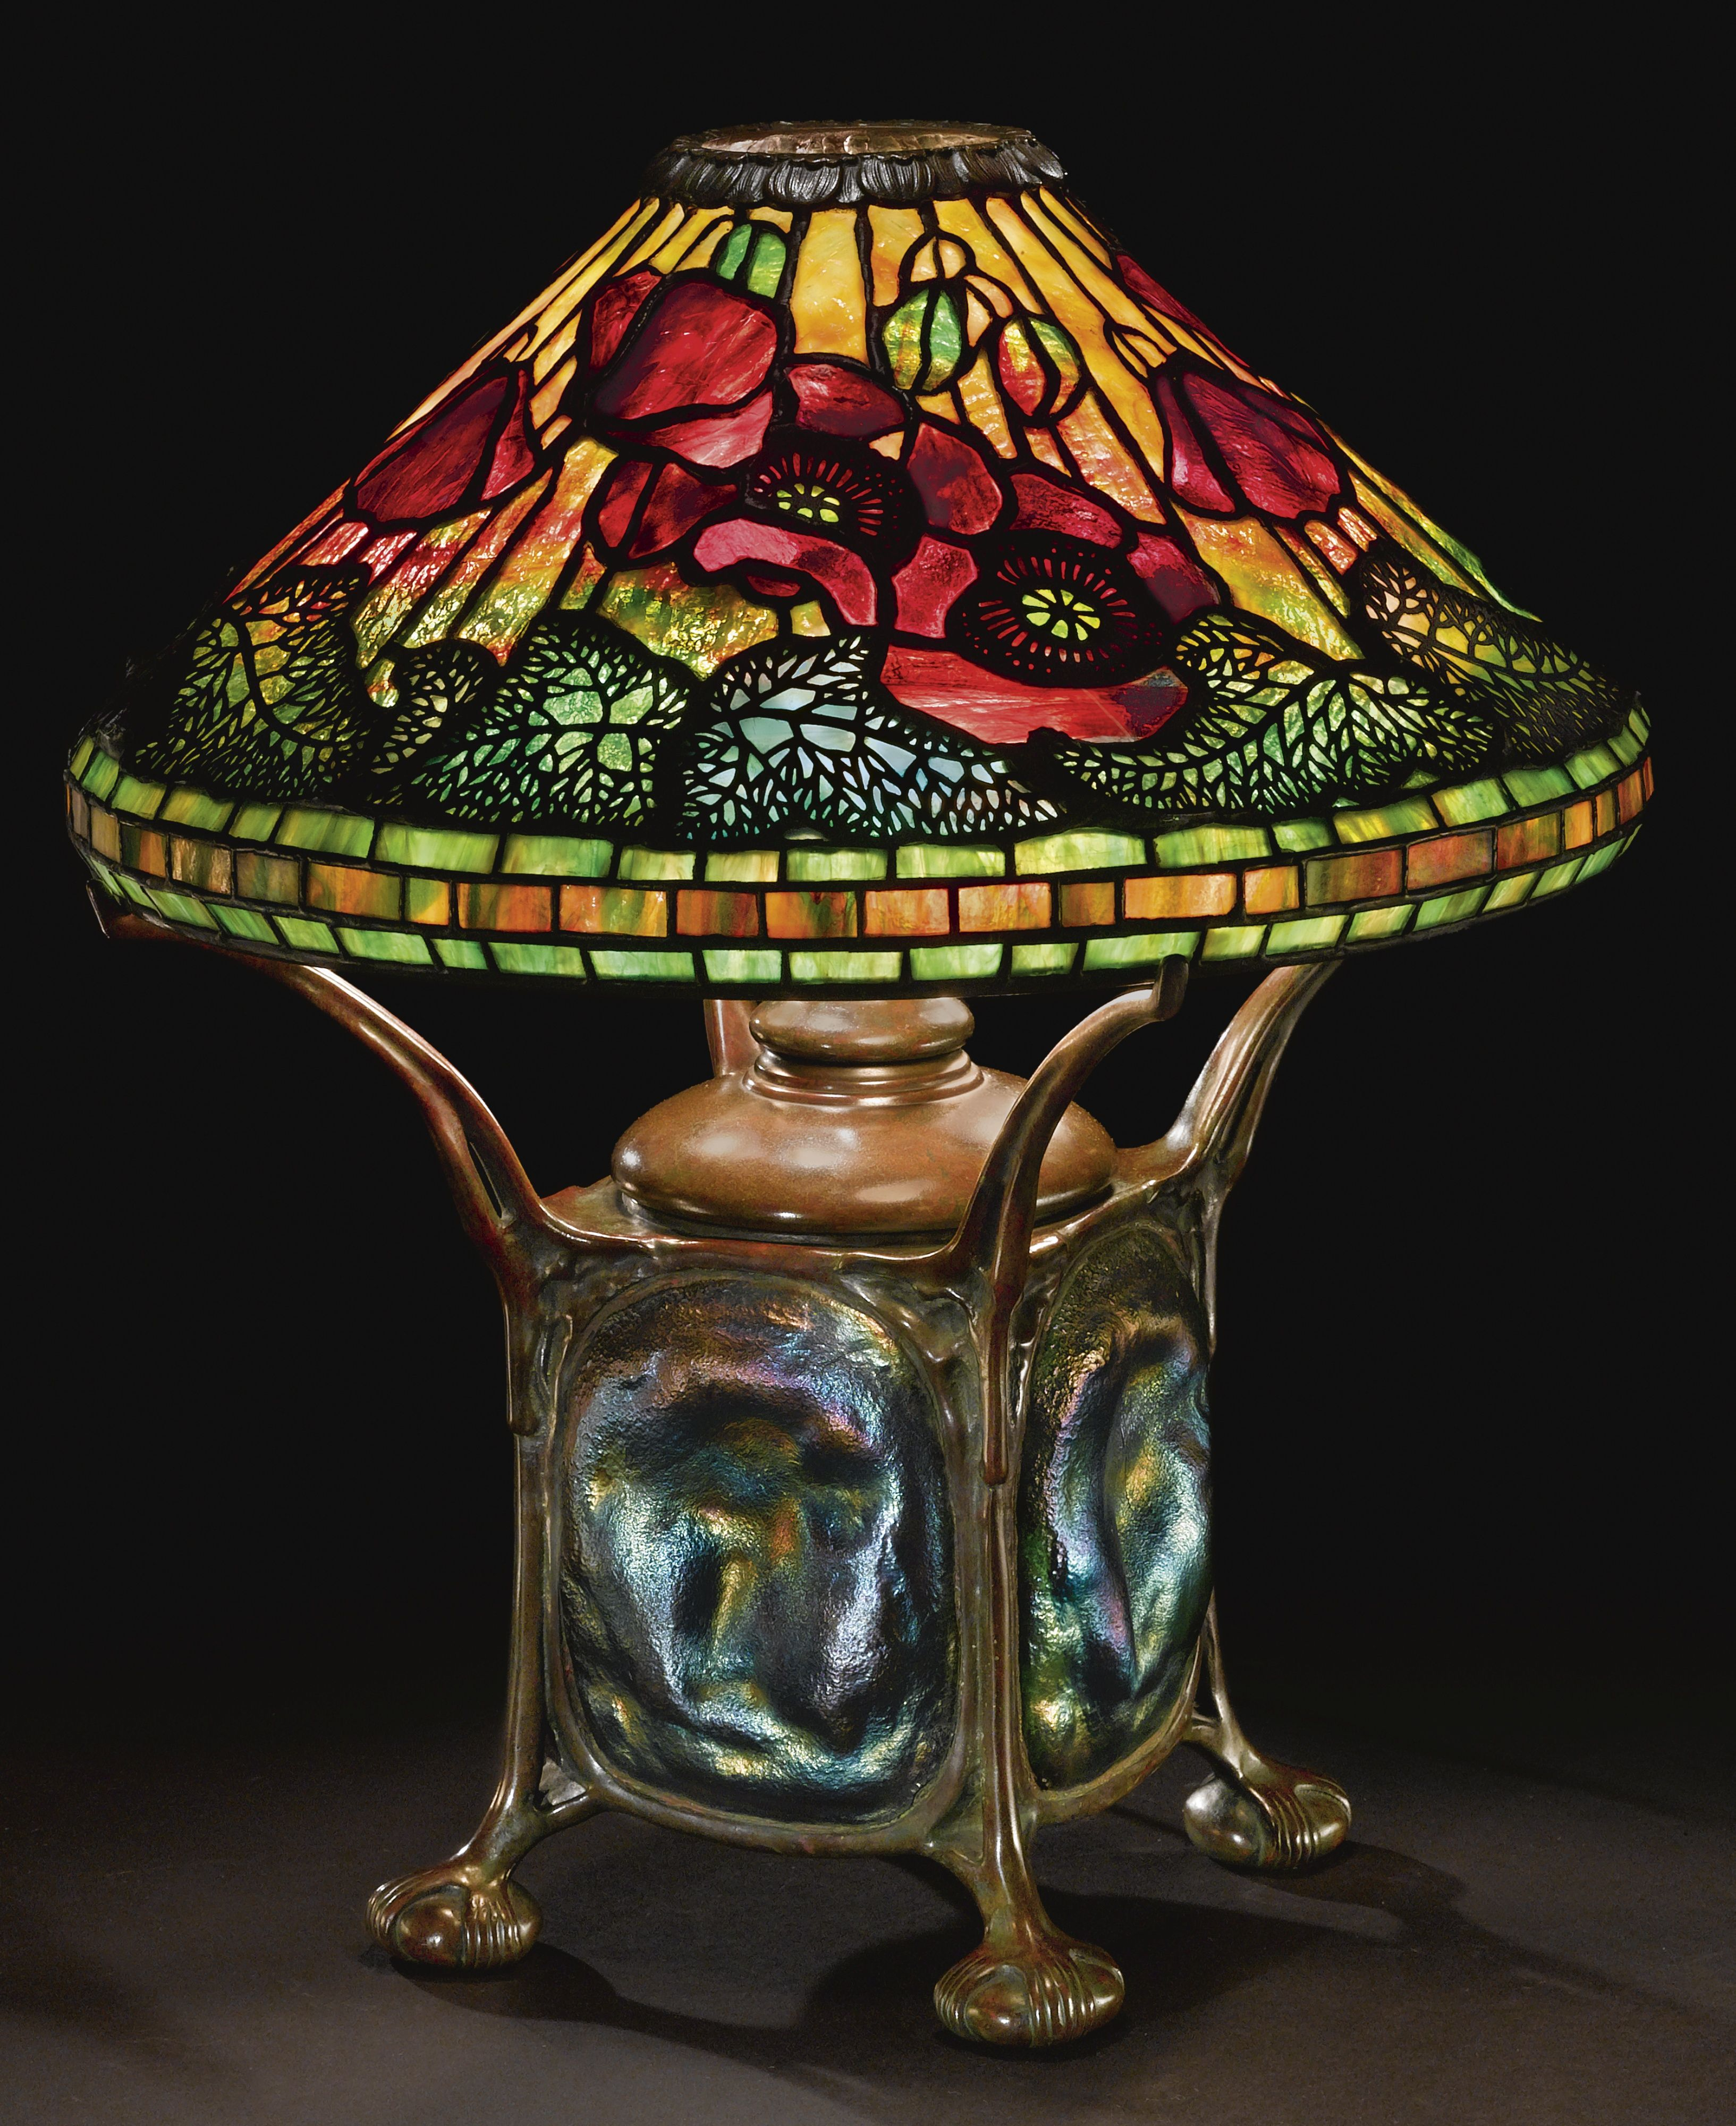 Tiffany Studios Poppy Table Lamp With A Rare Turtleback Tile Base The Shade With A Rare Patinated Bronze Dec Jugendstil Lampen Tiffany Lampen Antike Lampe